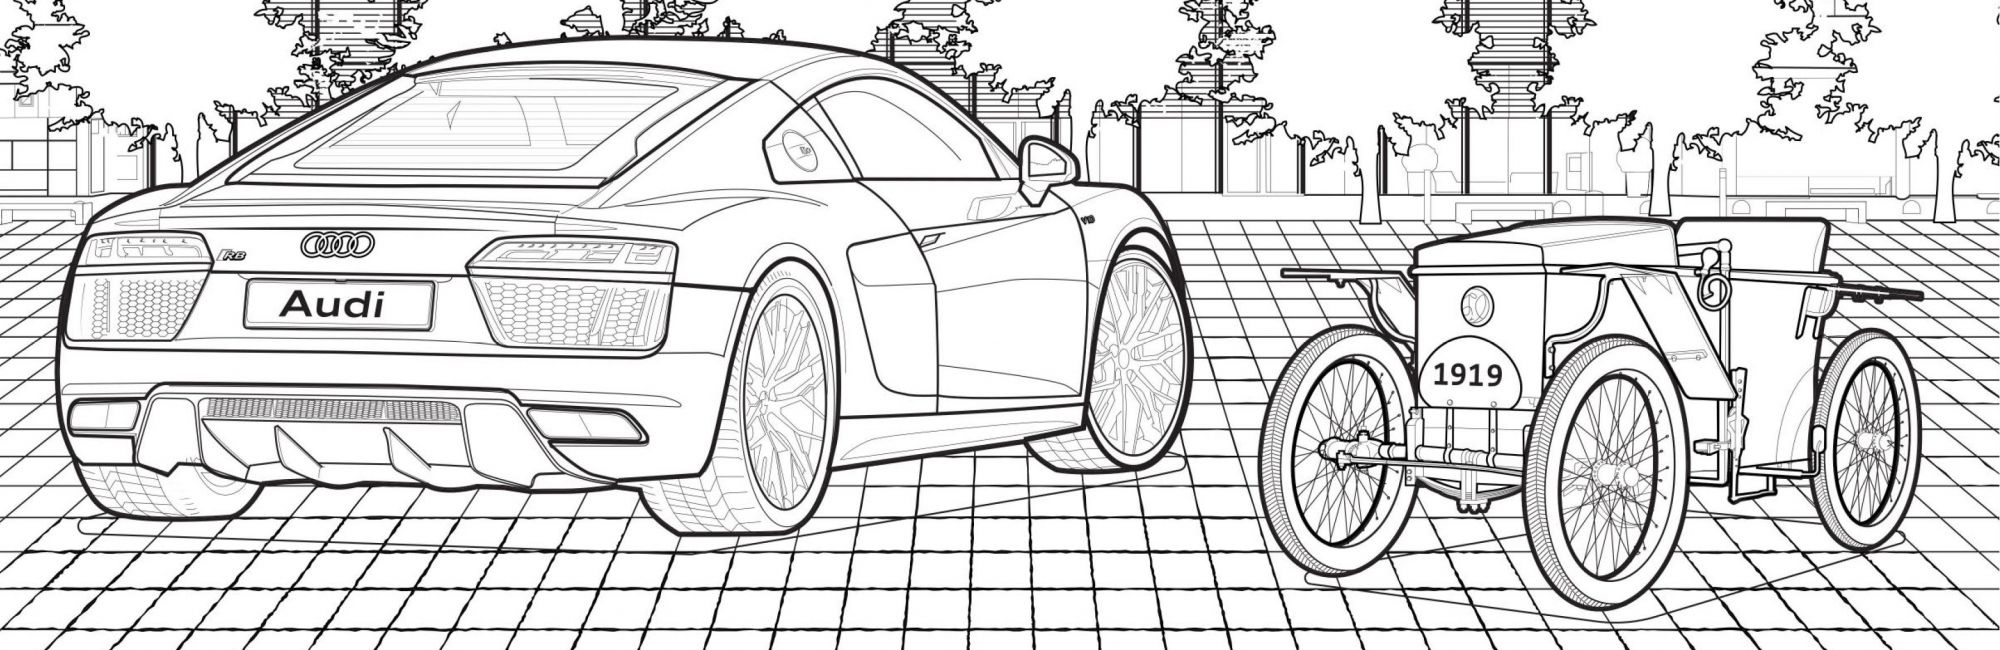 Audi Coloring Book   Used luxury cars, Audi, Coloring books